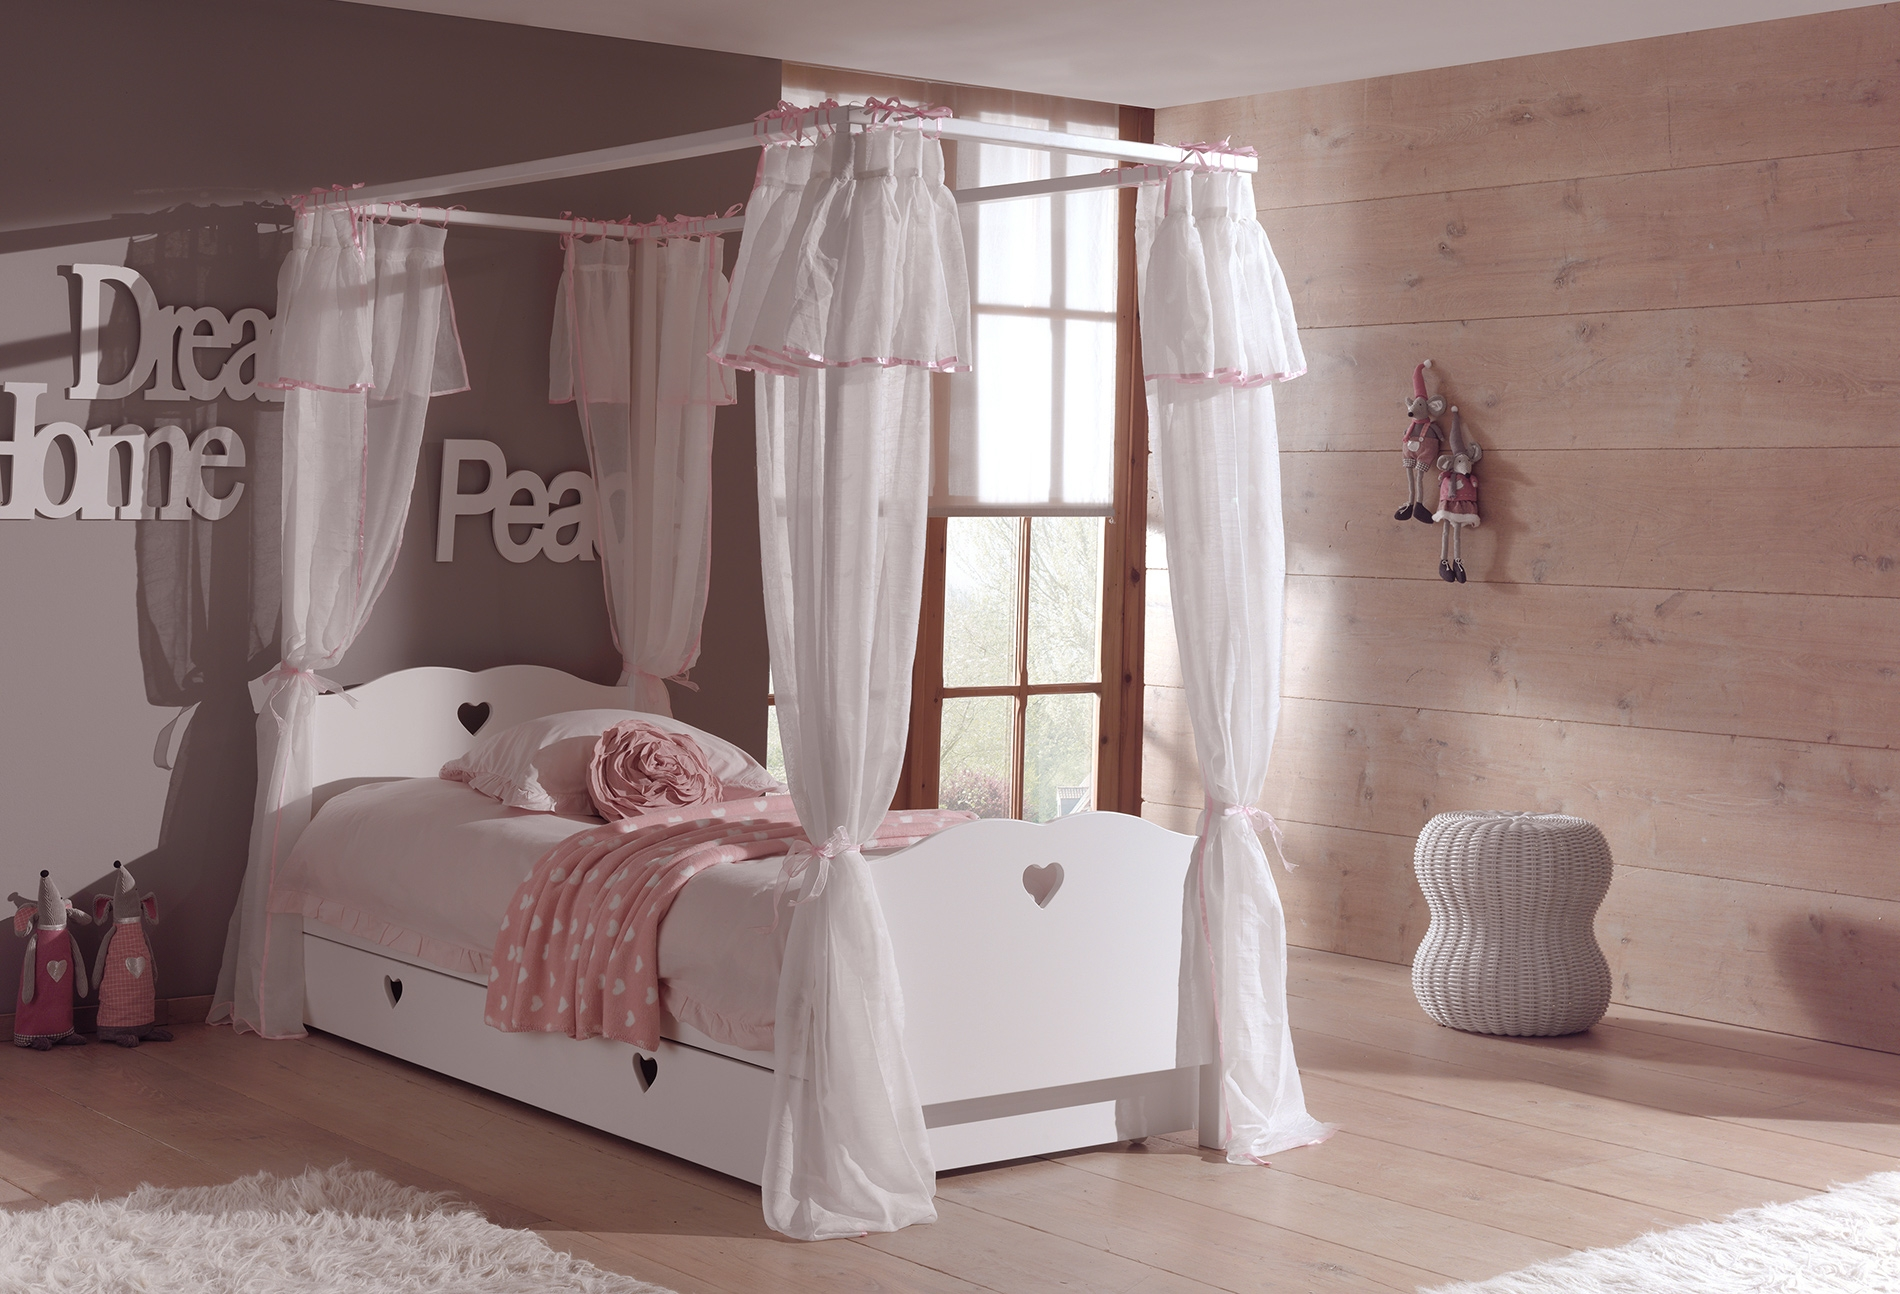 lit baldaquin enfant so romantique de la chambre emilie. Black Bedroom Furniture Sets. Home Design Ideas